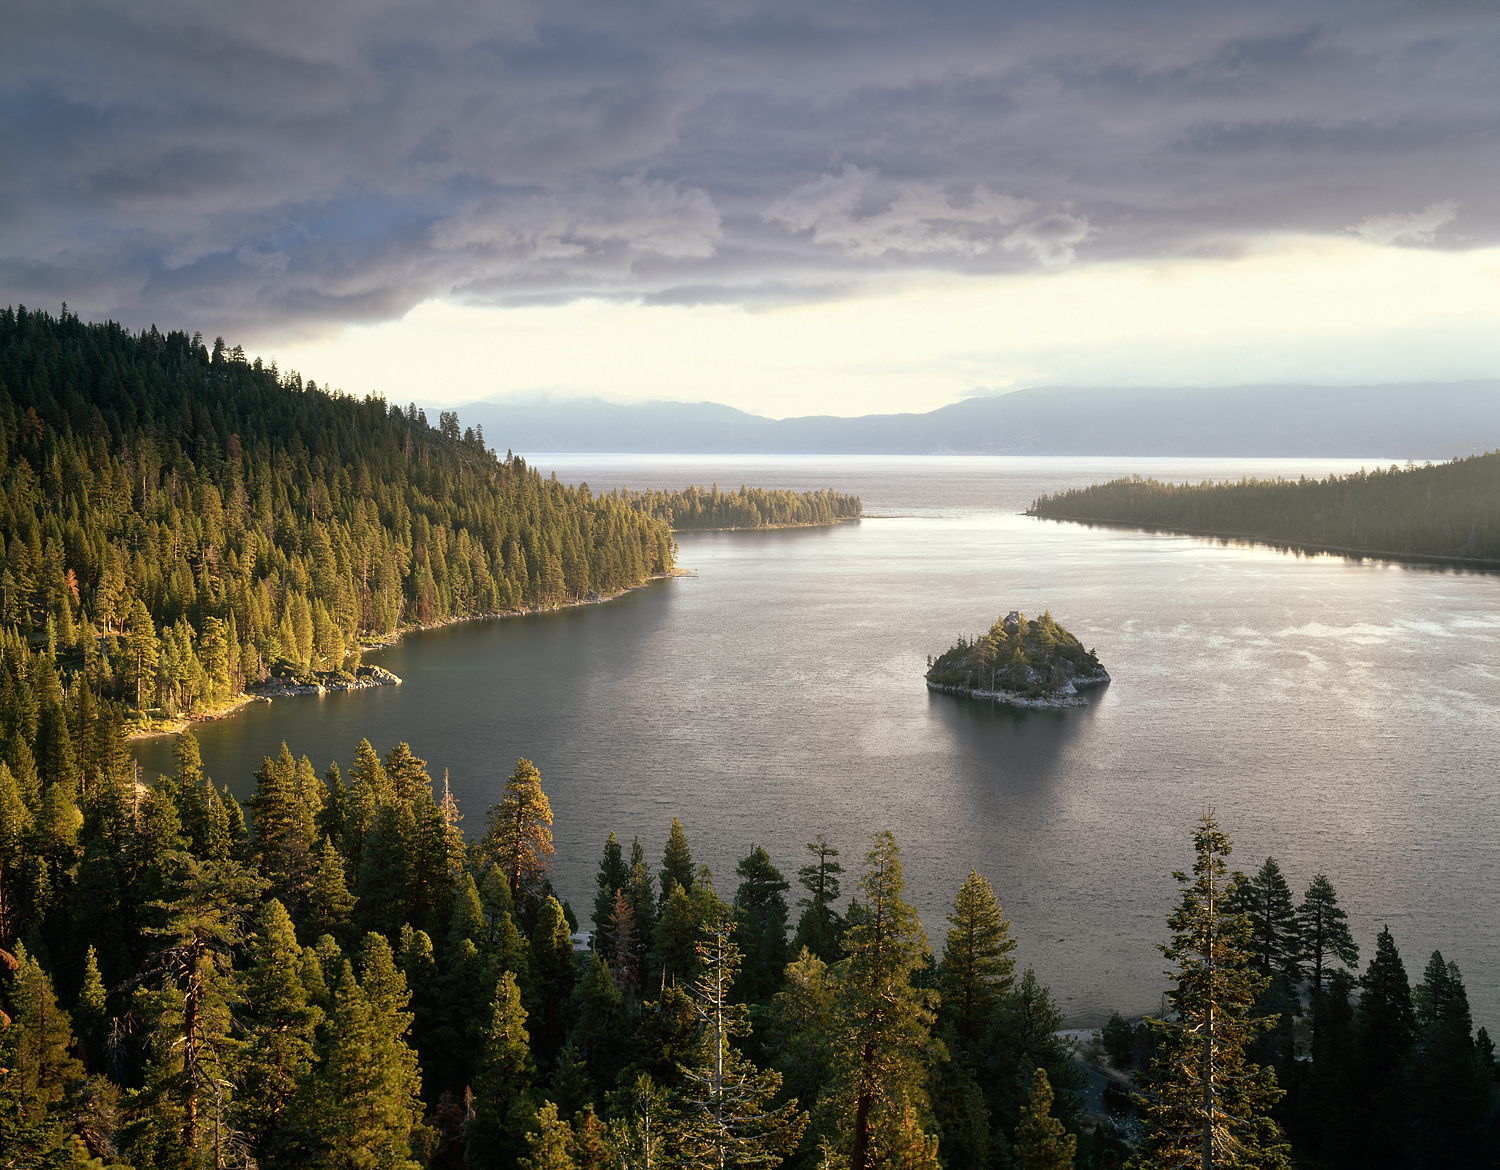 Storm Light, Emerald Bay, Lake Tahoe